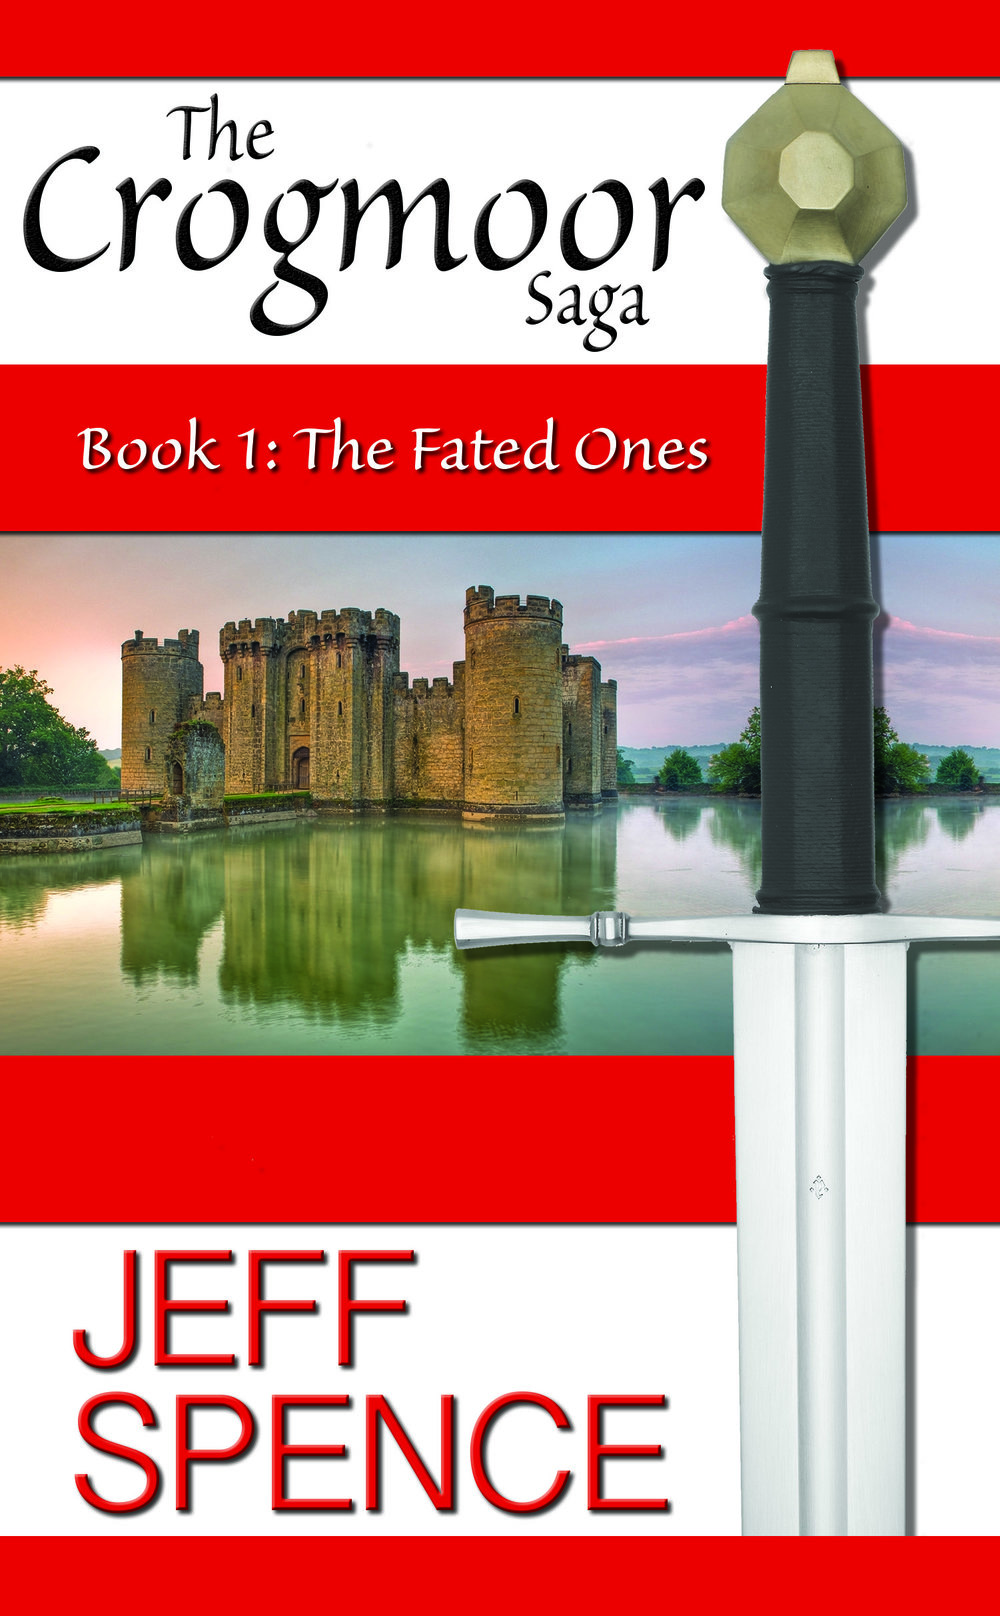 Crogmoor Book 01_The Fated Ones copy.jpg